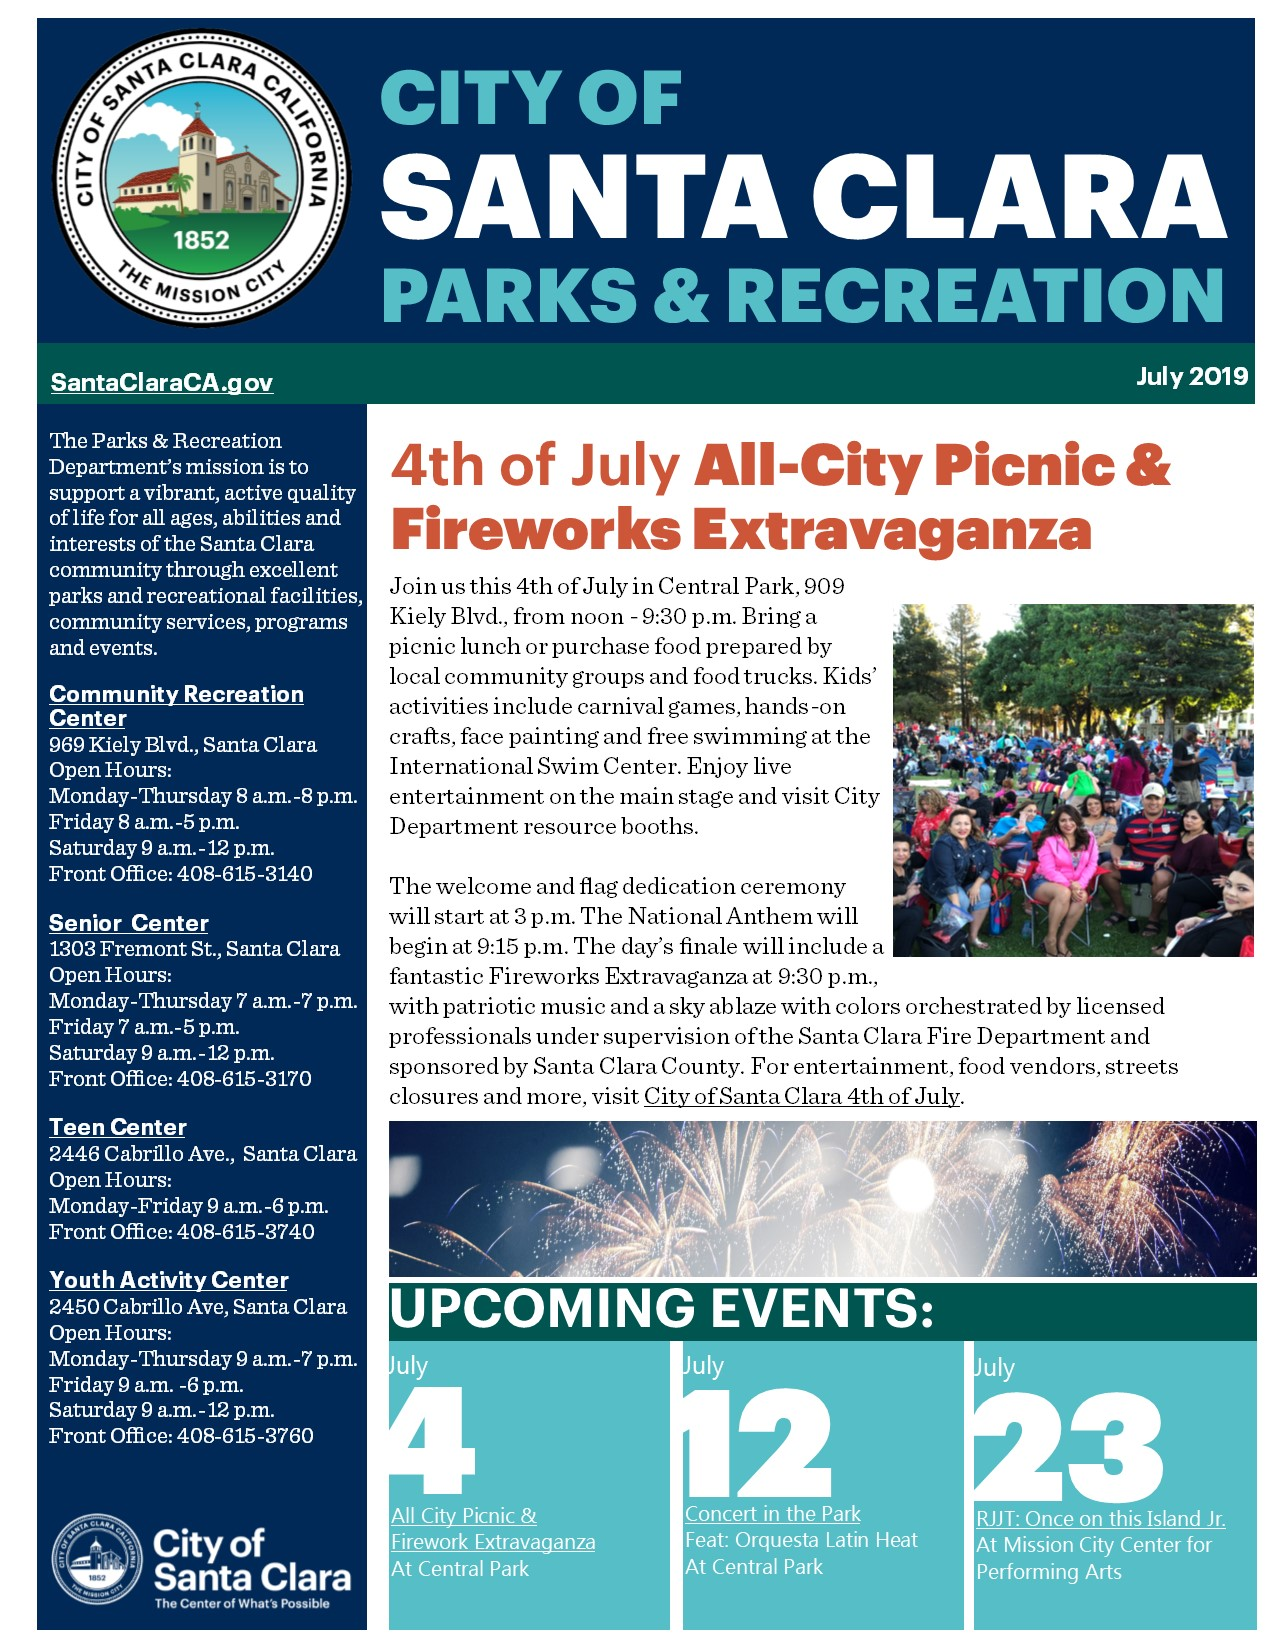 eNewsletter - July 2019 FINAL 12